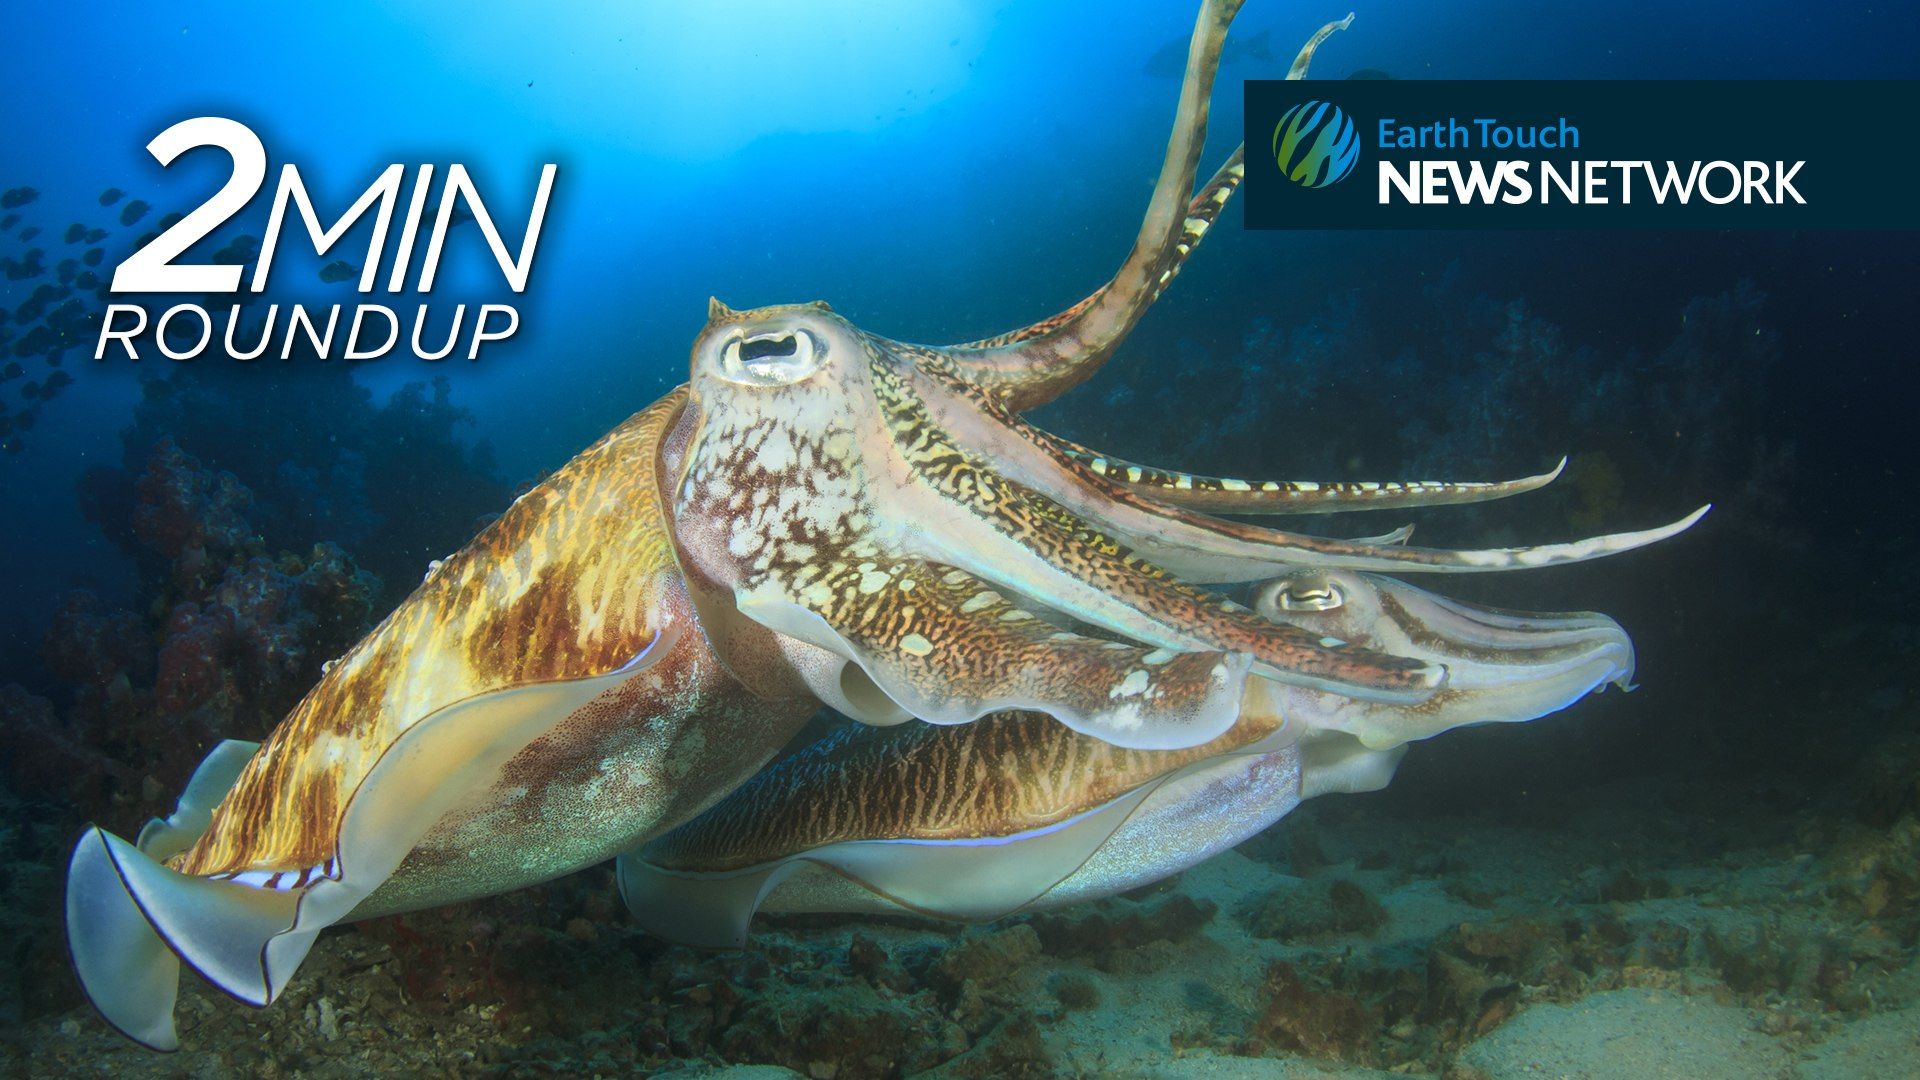 Counting cuttlefish, a sunfish rescue & South Africa's rhino poaching stats